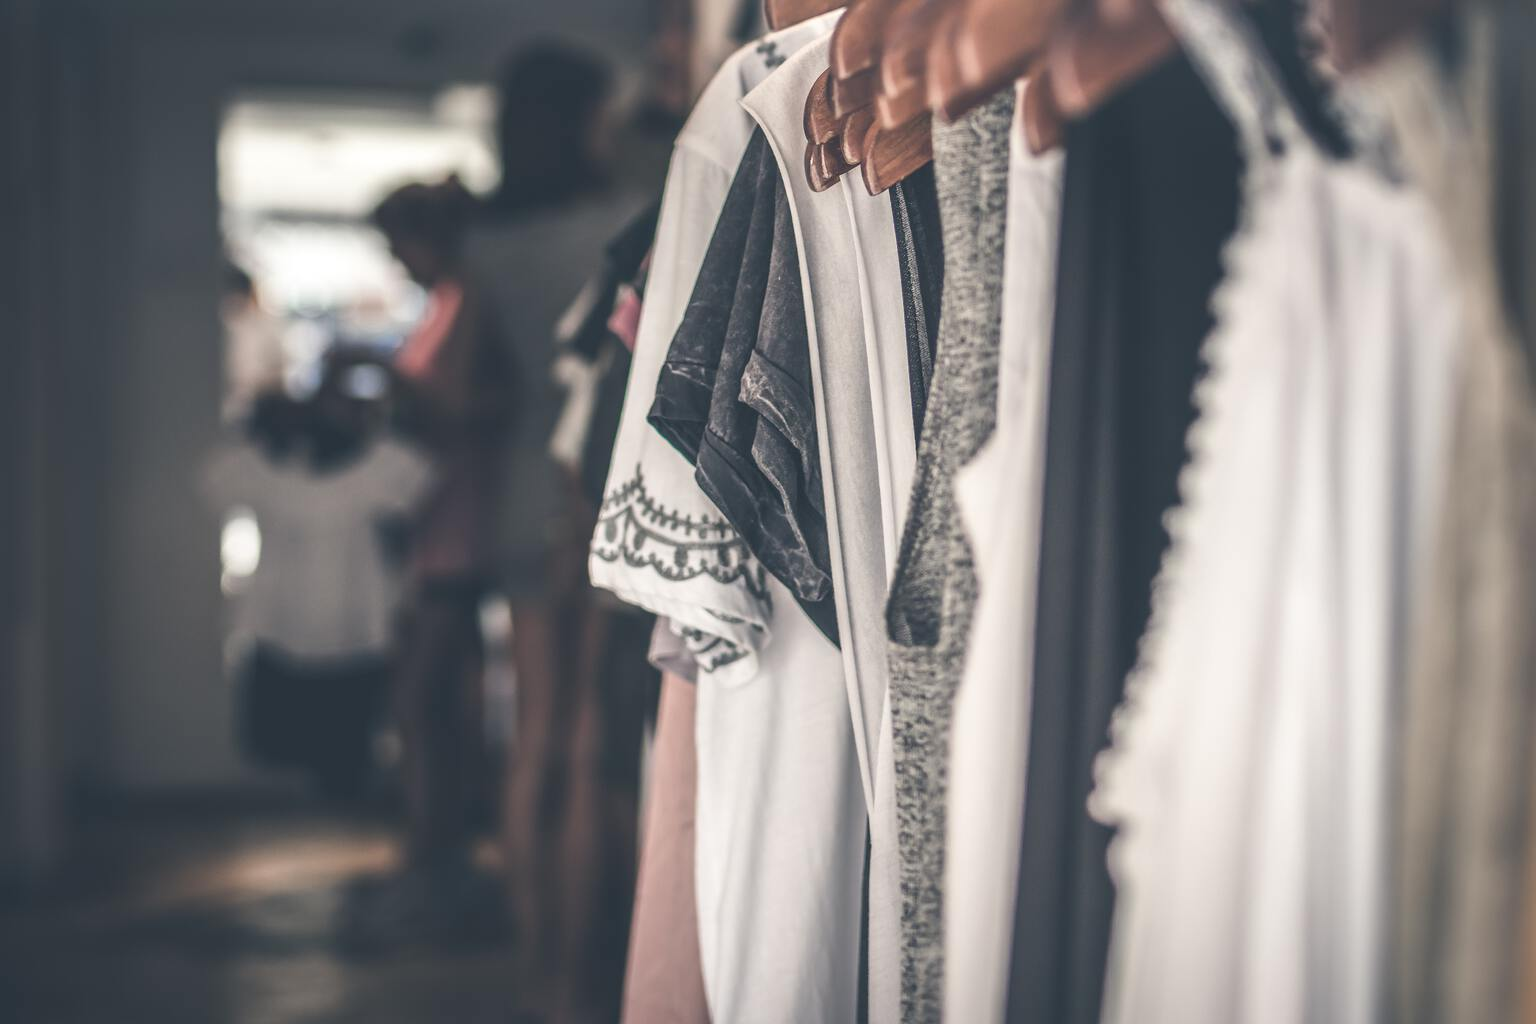 Womens clothing on hangers.